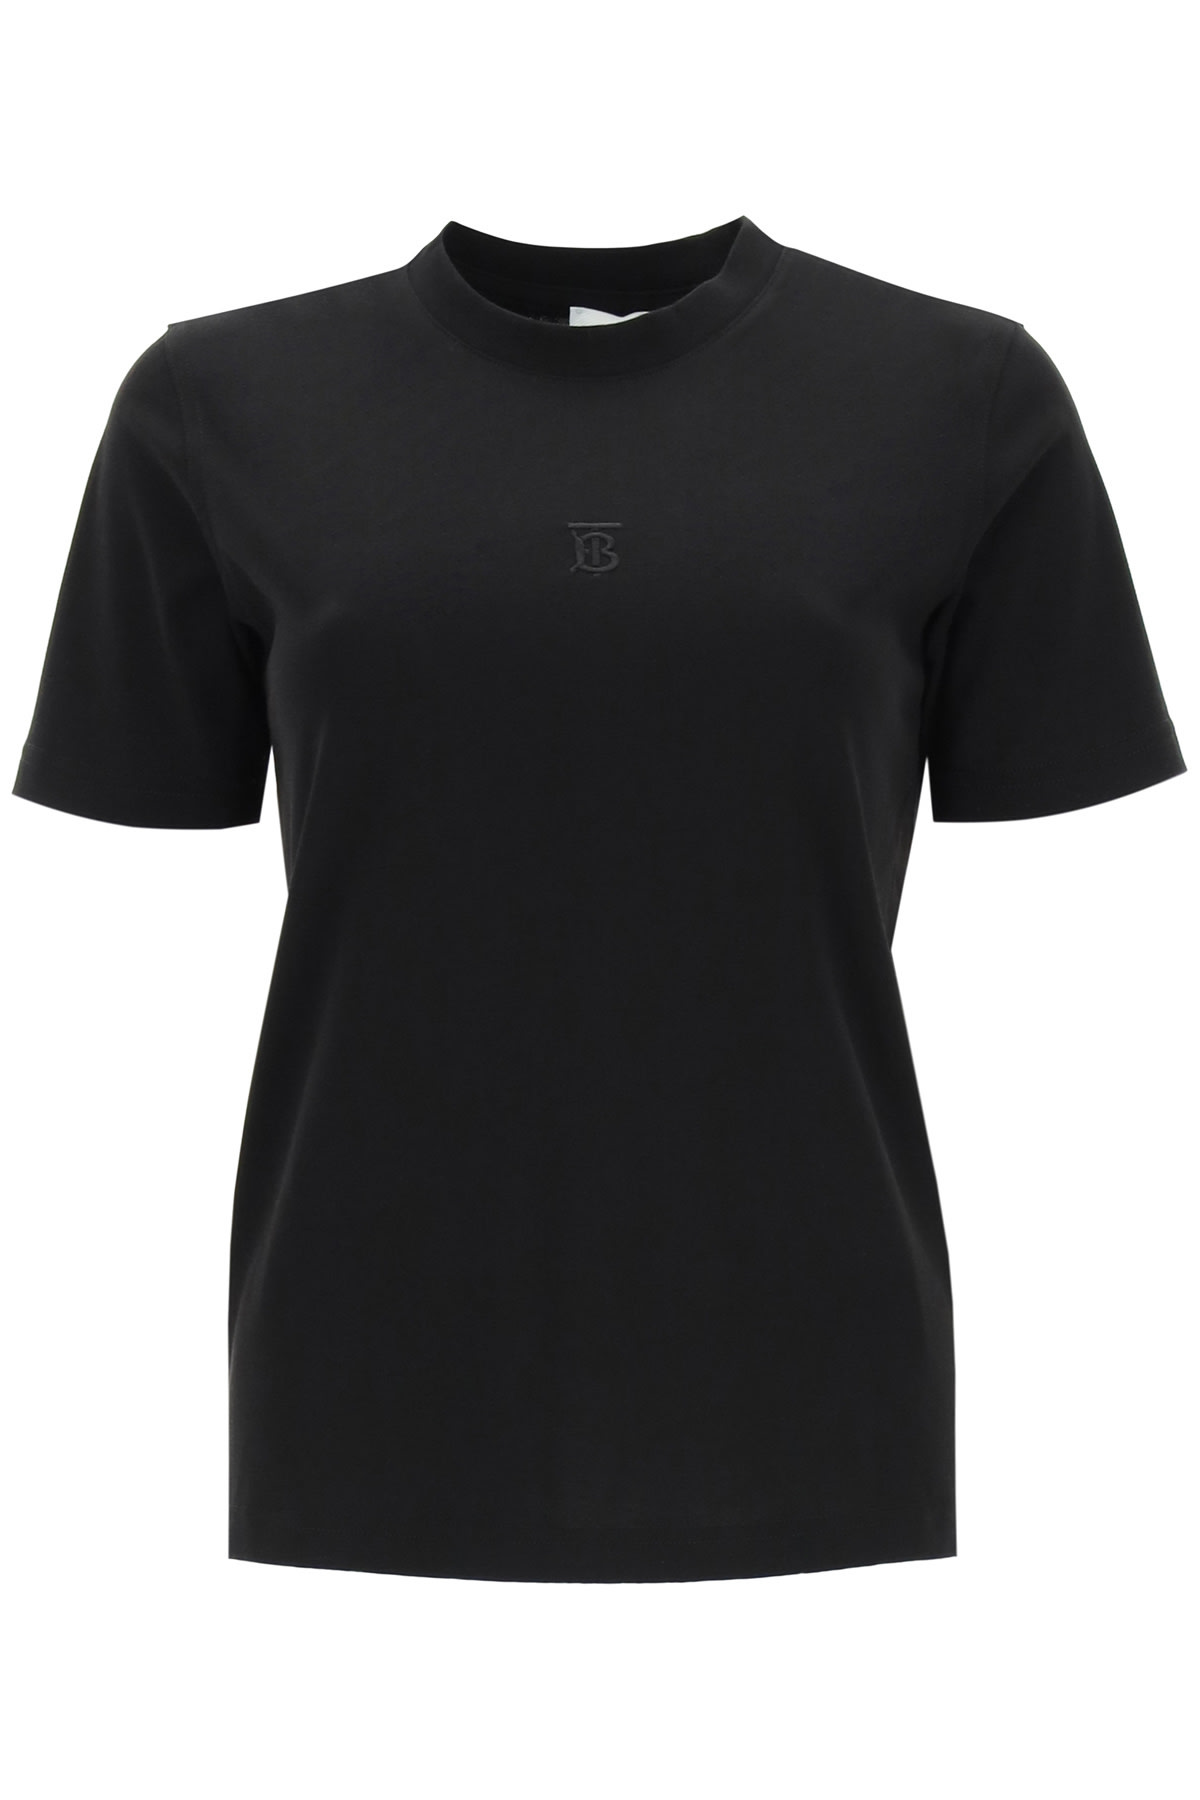 Burberry DOVEY T-SHIRT WITH MONOGRAM EMBROIDERY